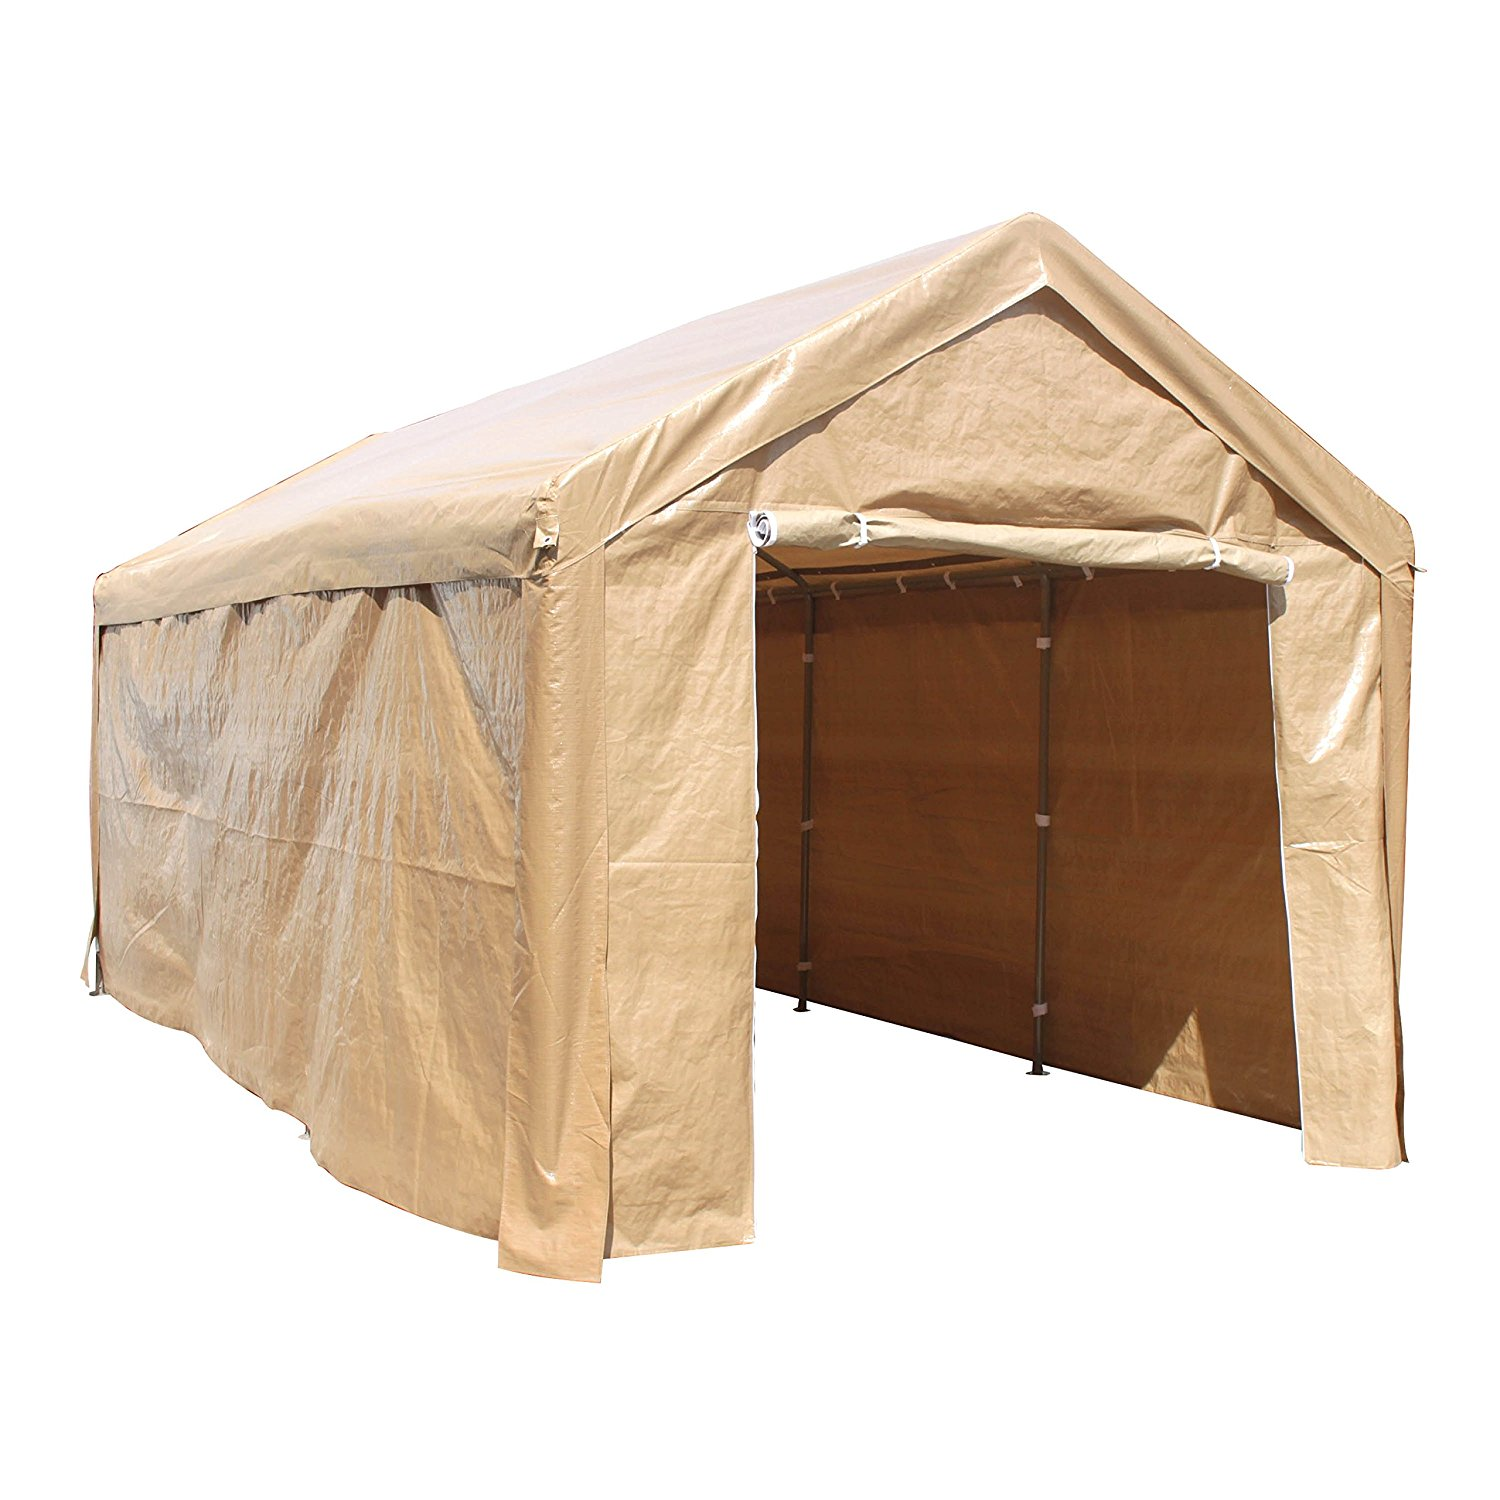 Aleko Heavy Duty Outdoor Canopy Carport Tent - 10 X 20 FT - Beige